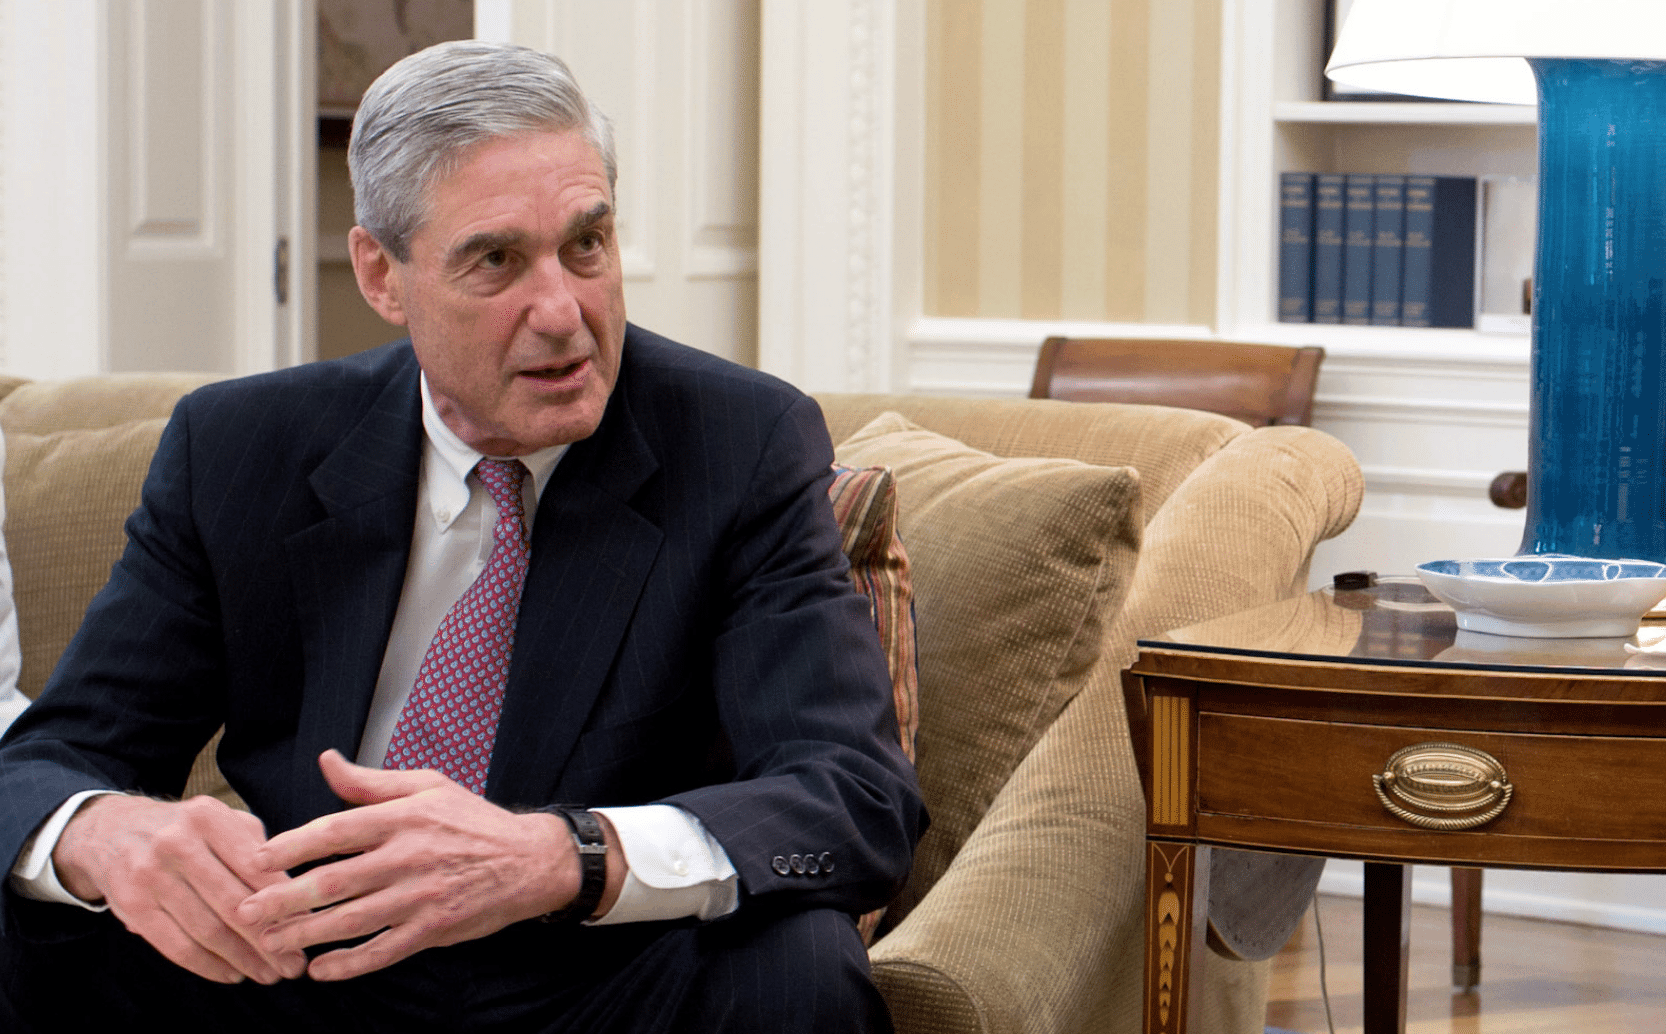 Mueller Reportedly has 'Strong' Evidence That Trump Obstructed Justice